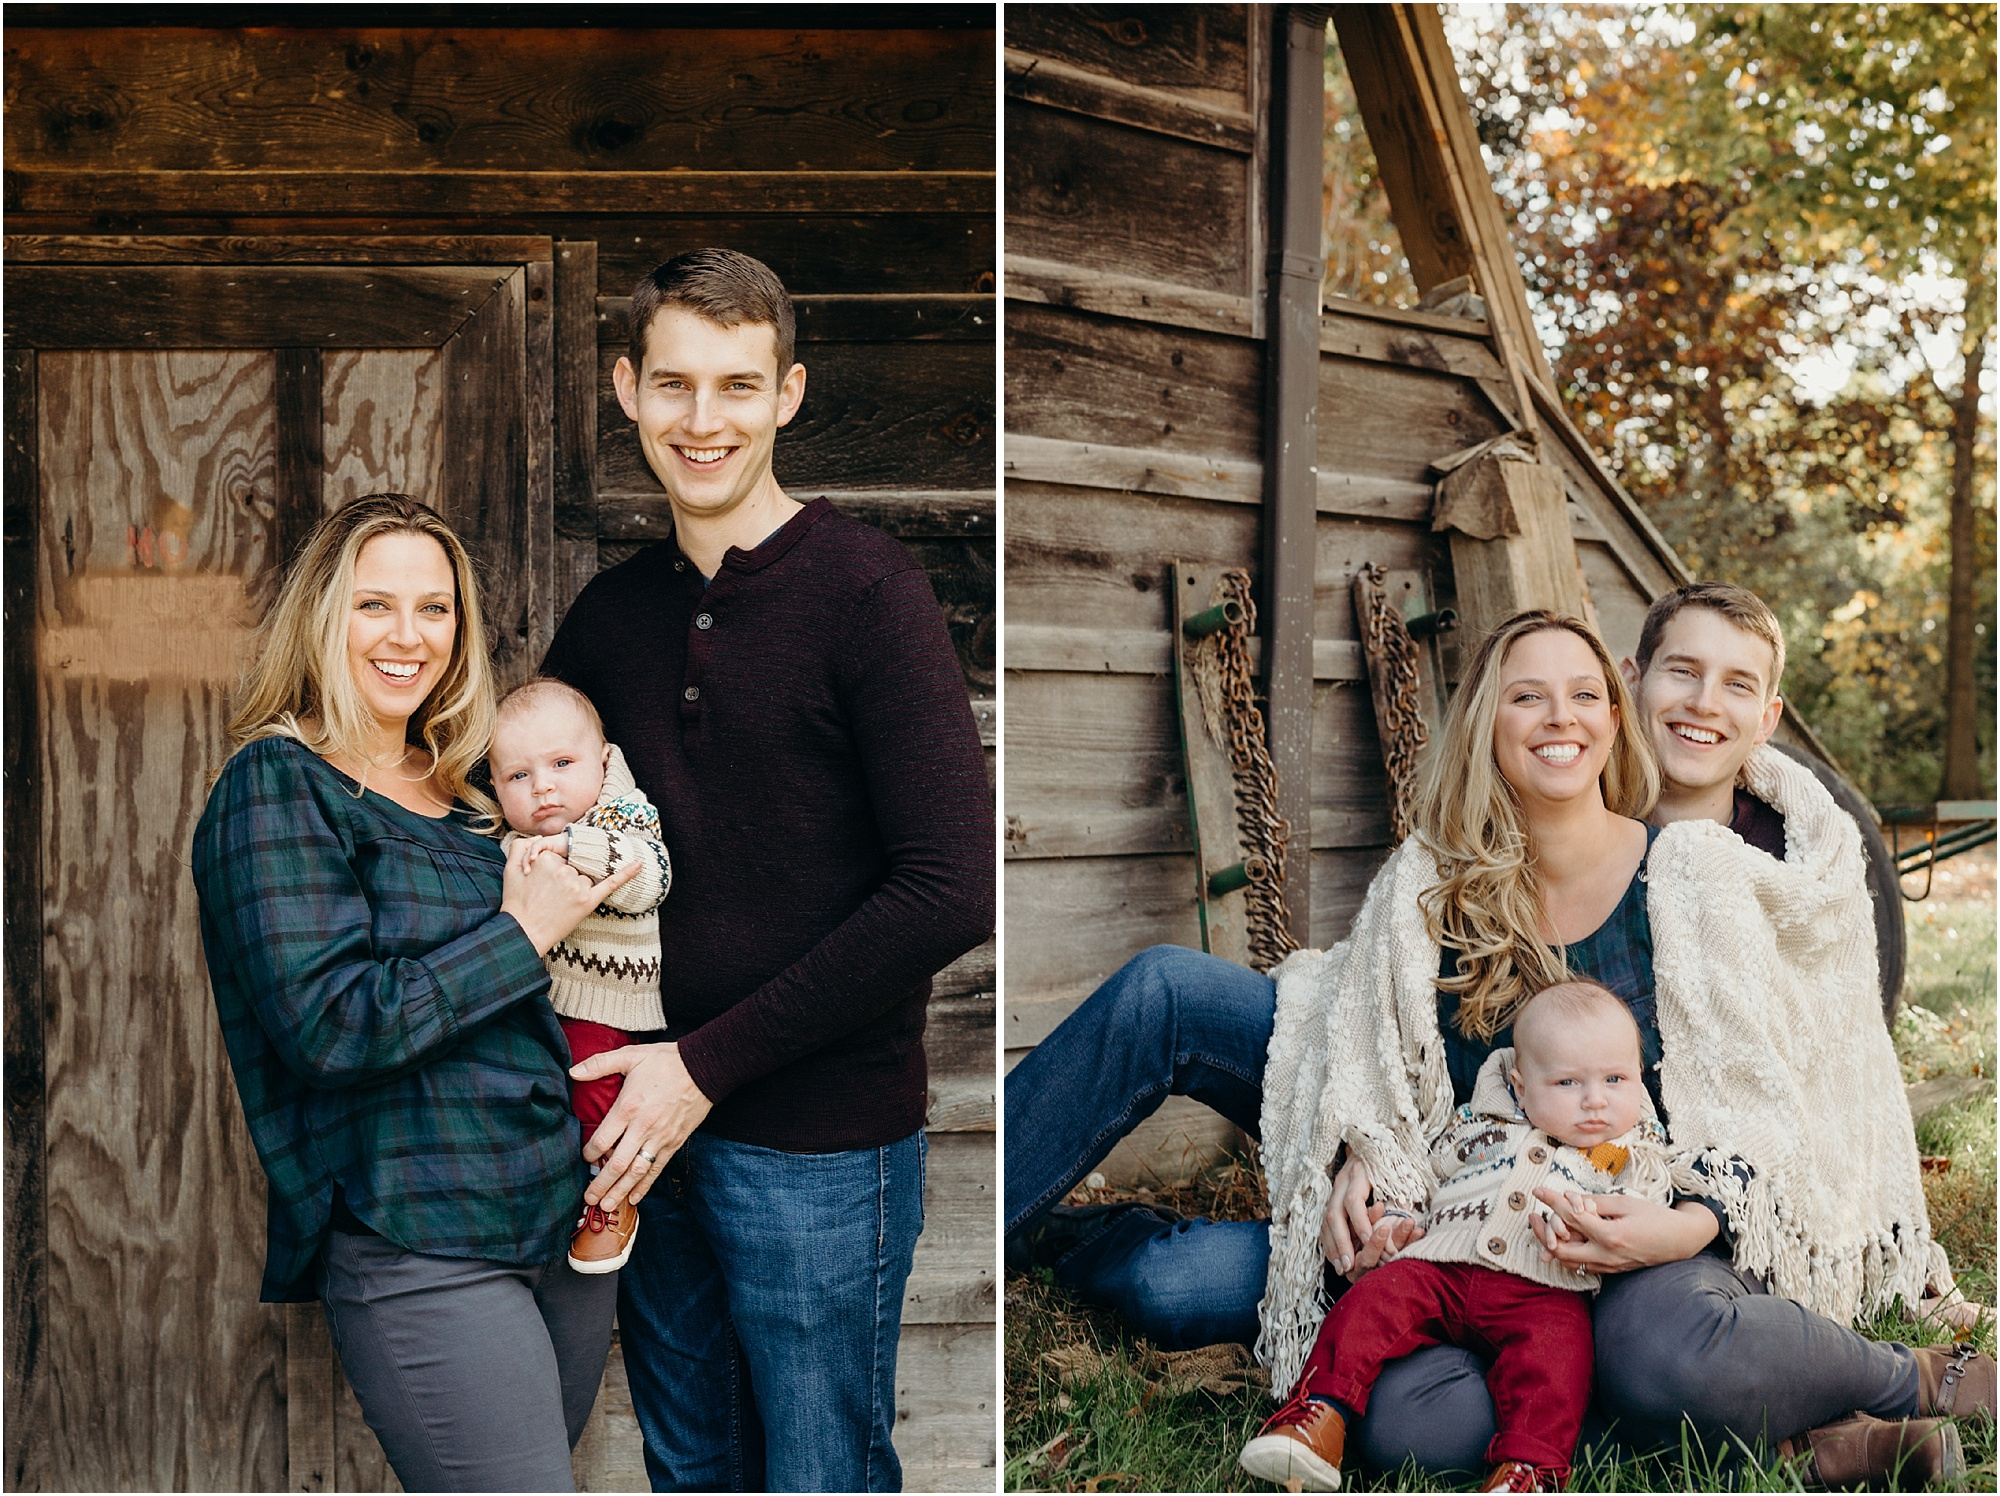 Melissa_Time_Fall_2017_Joe_Mac_Photography_Family_0021.jpg